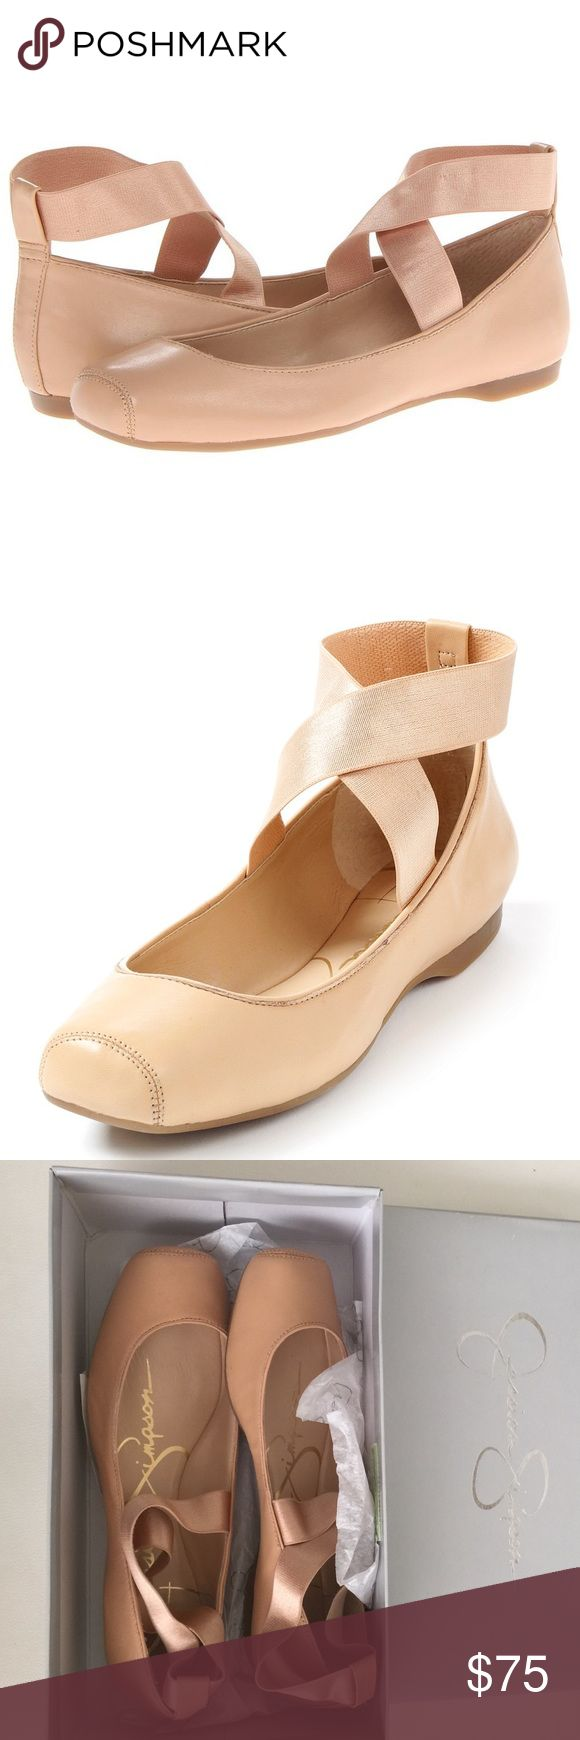 Jessica Simpson Ballet Flats Jessica Simpson leather ballet flat style. Featured in natural. Criss cross elastic ankle strap. Closed toe. Closed back. Classic, comfy and cute! Jessica Simpson Shoes Flats & Loafers